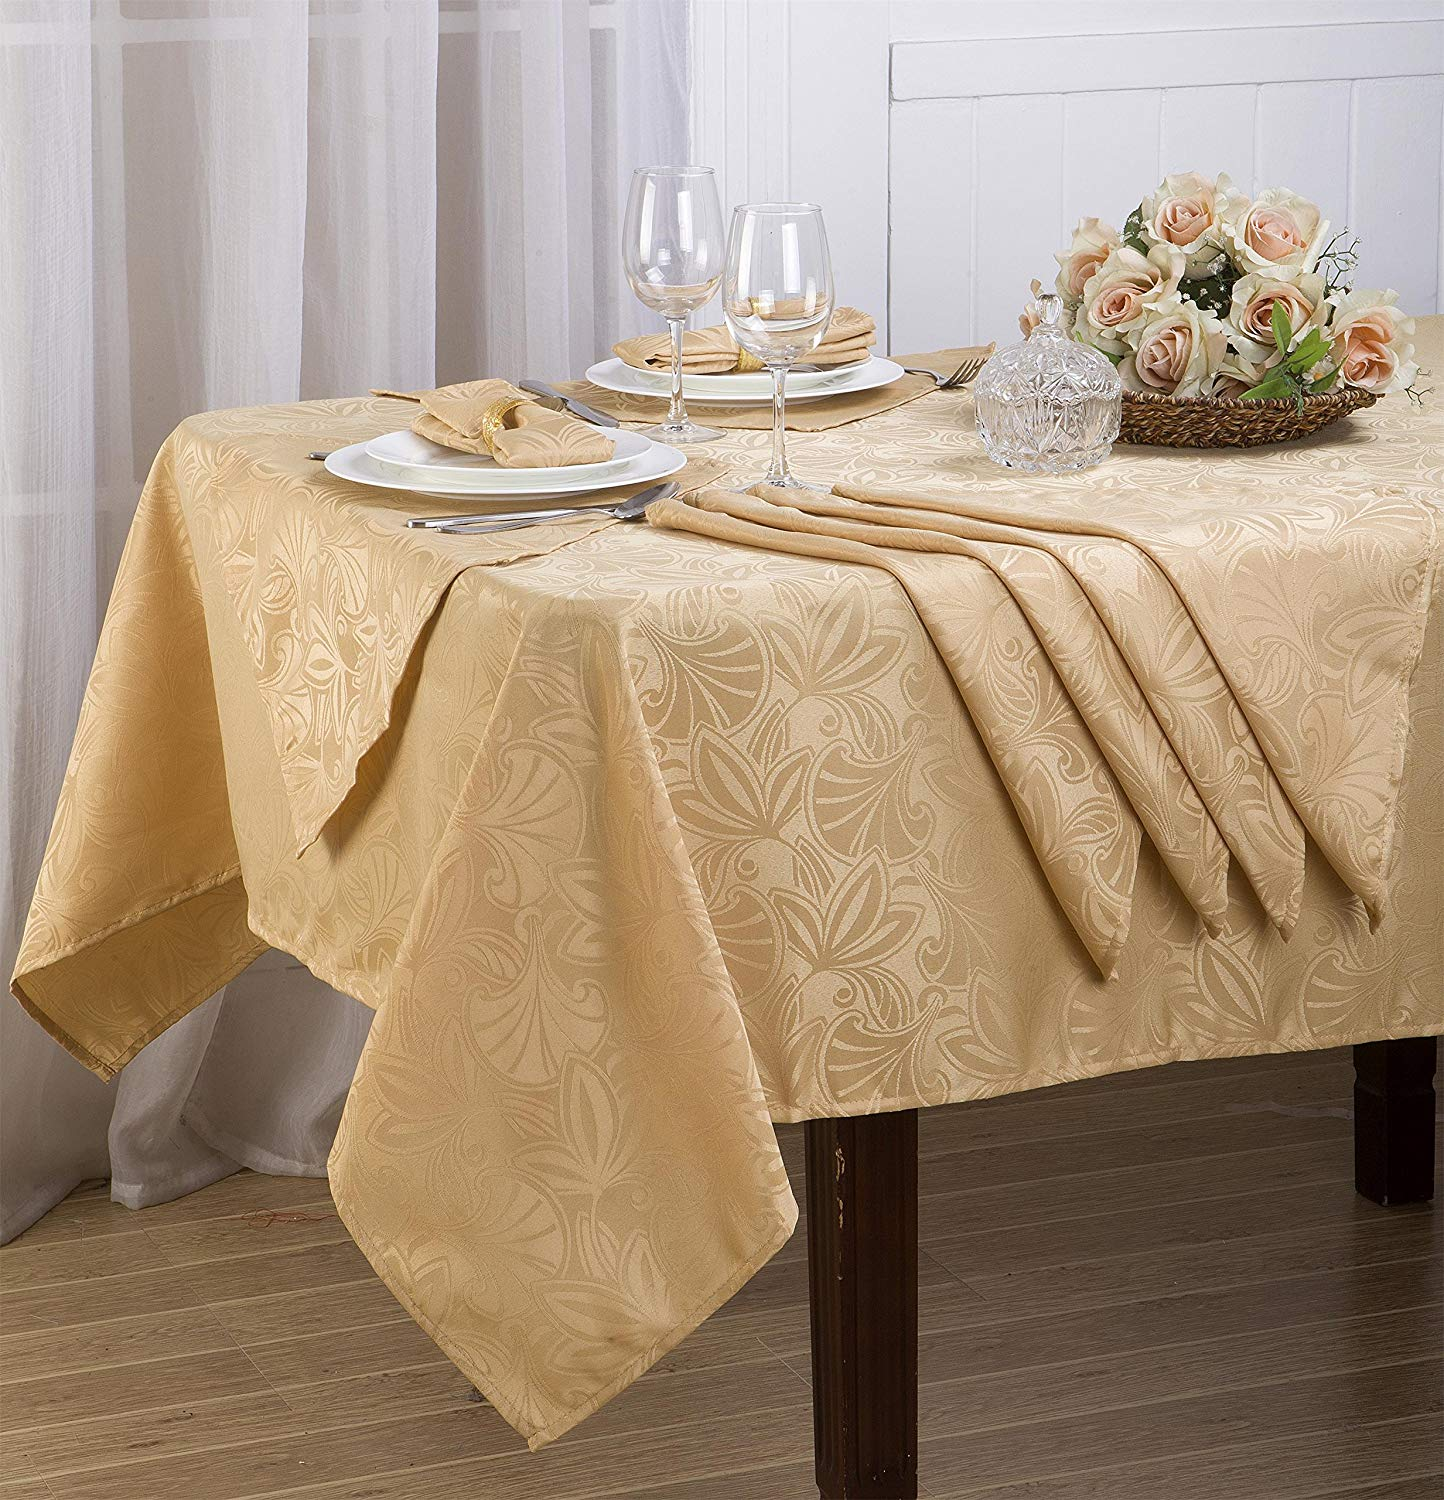 prodigious Cheap Table Cover Ideas Part - 10: Get Quotations · Royal Bedding Elaine Table Cloth Set, Luxury and Elegant Table  Cloth Set with Napkins,